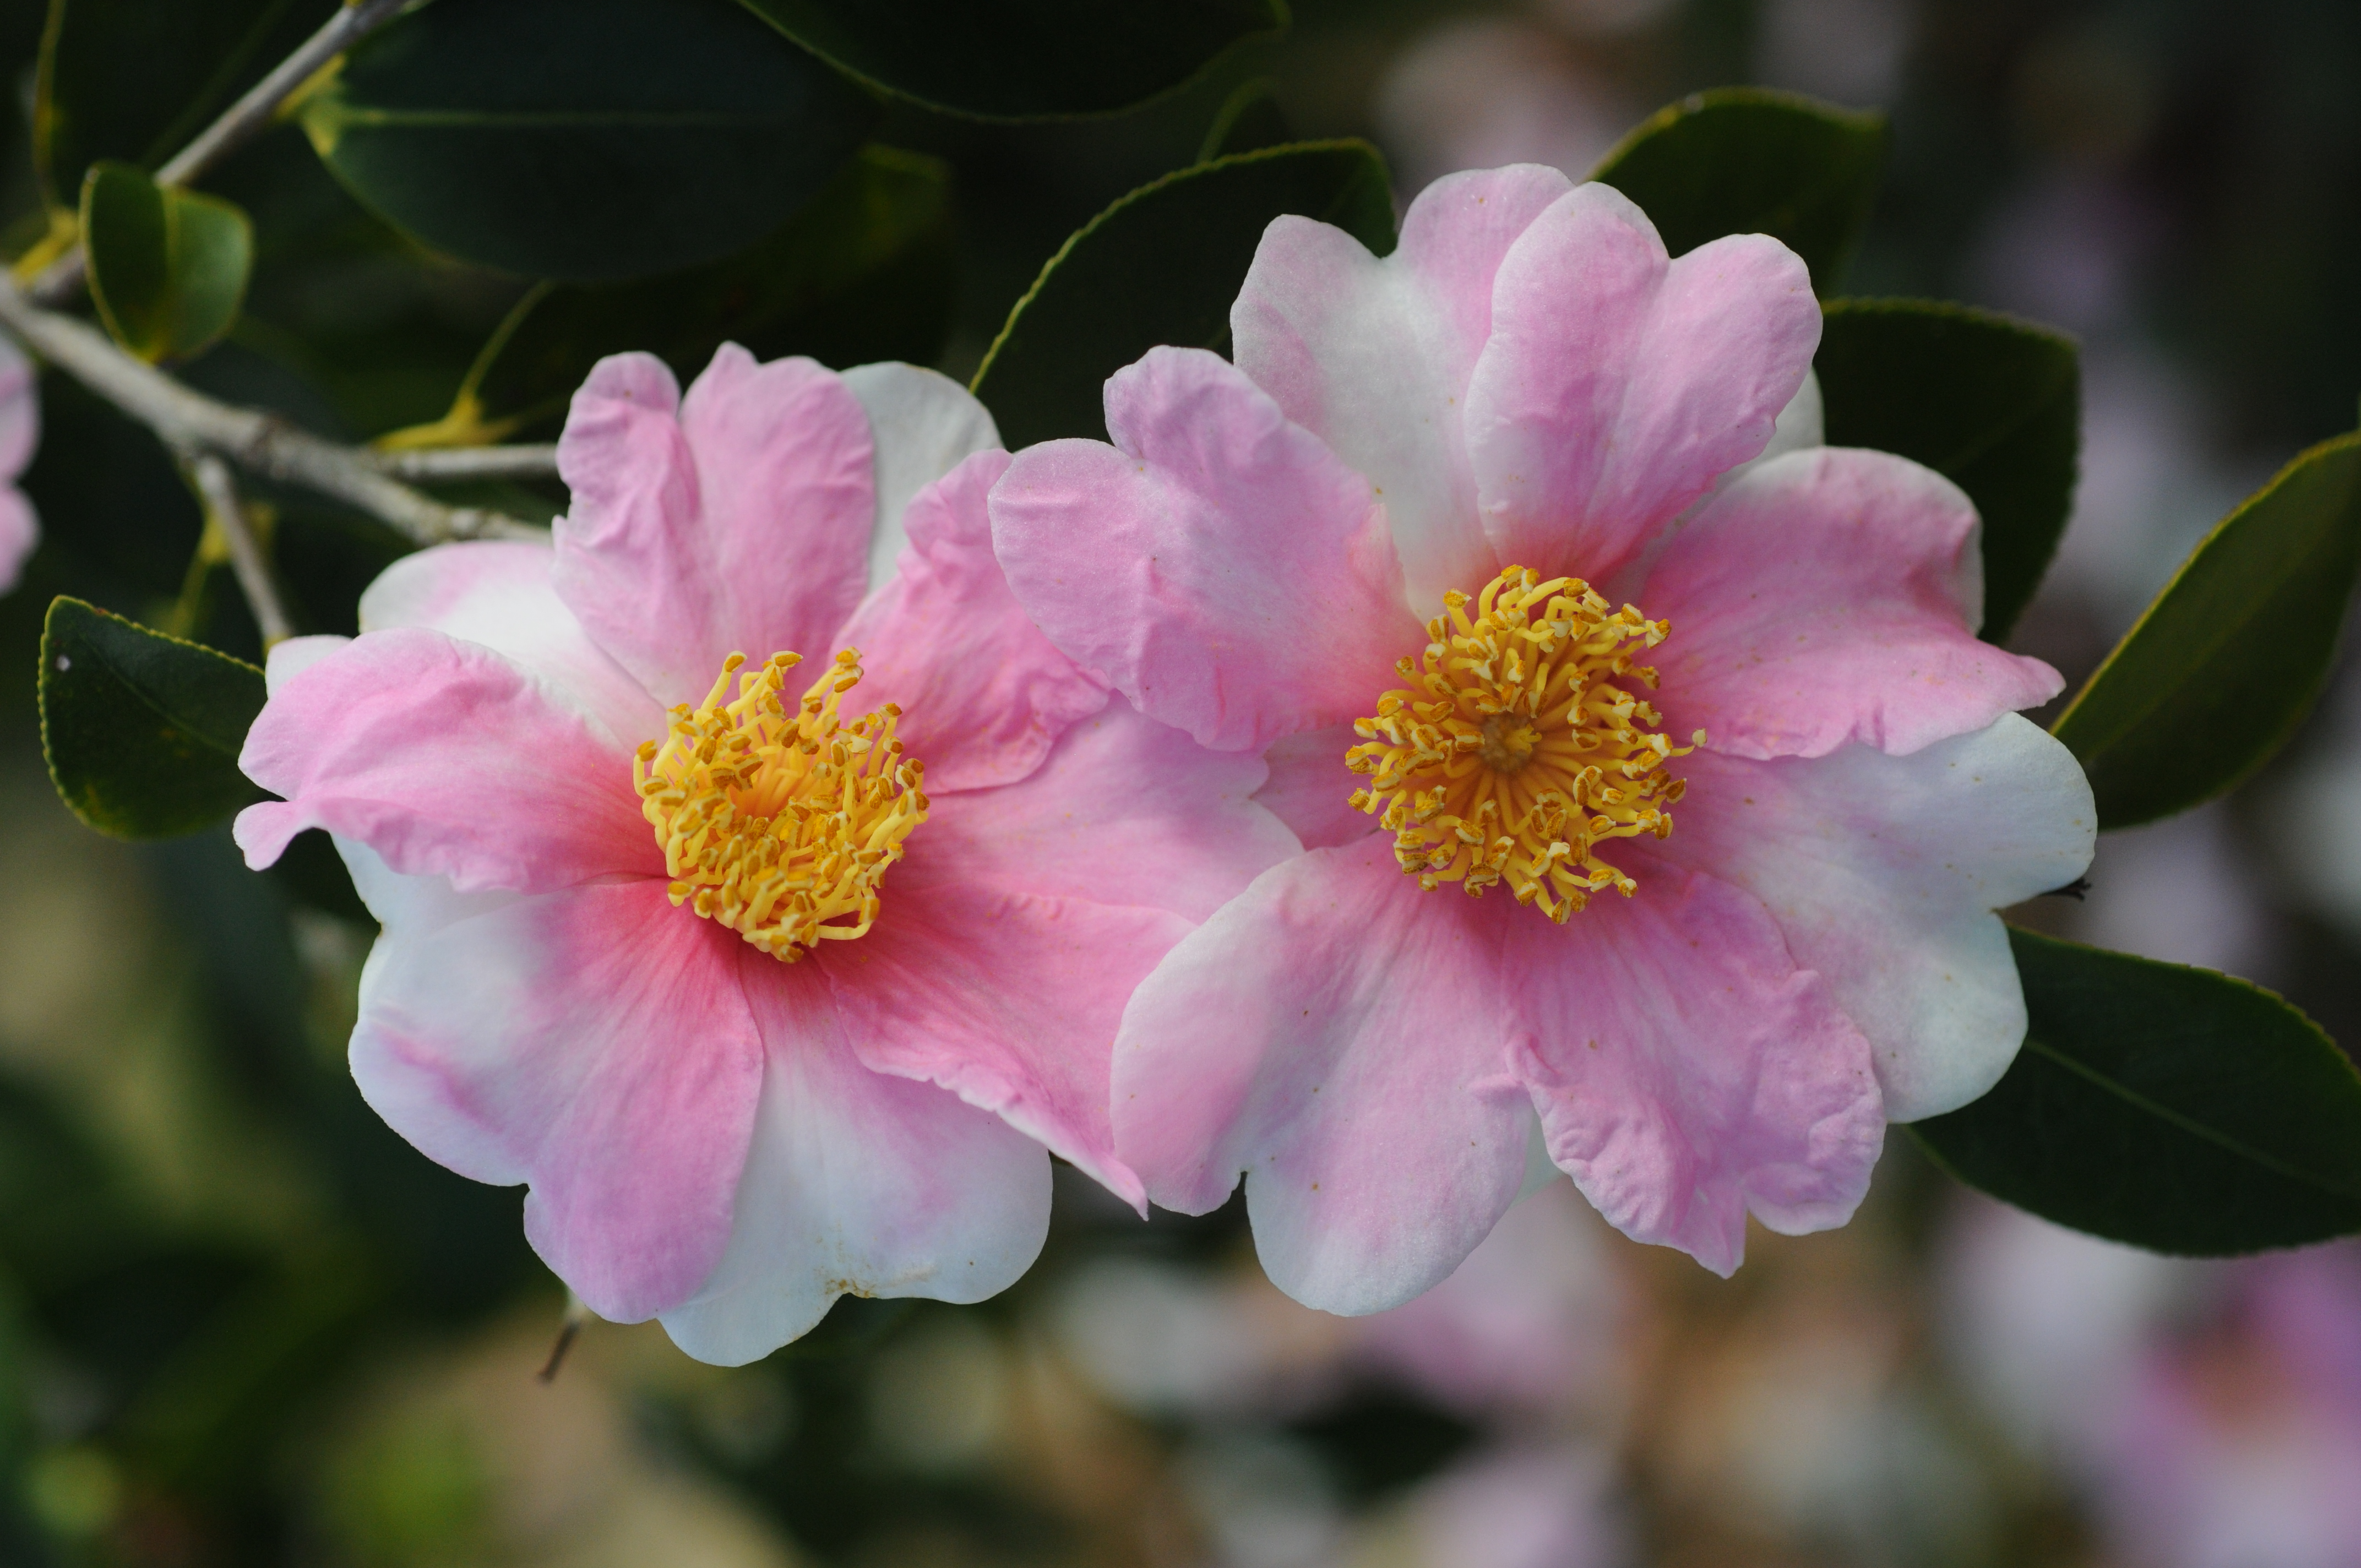 Winter Camellia and Cold Hardy Displays at Bellingrath Gardens and Home